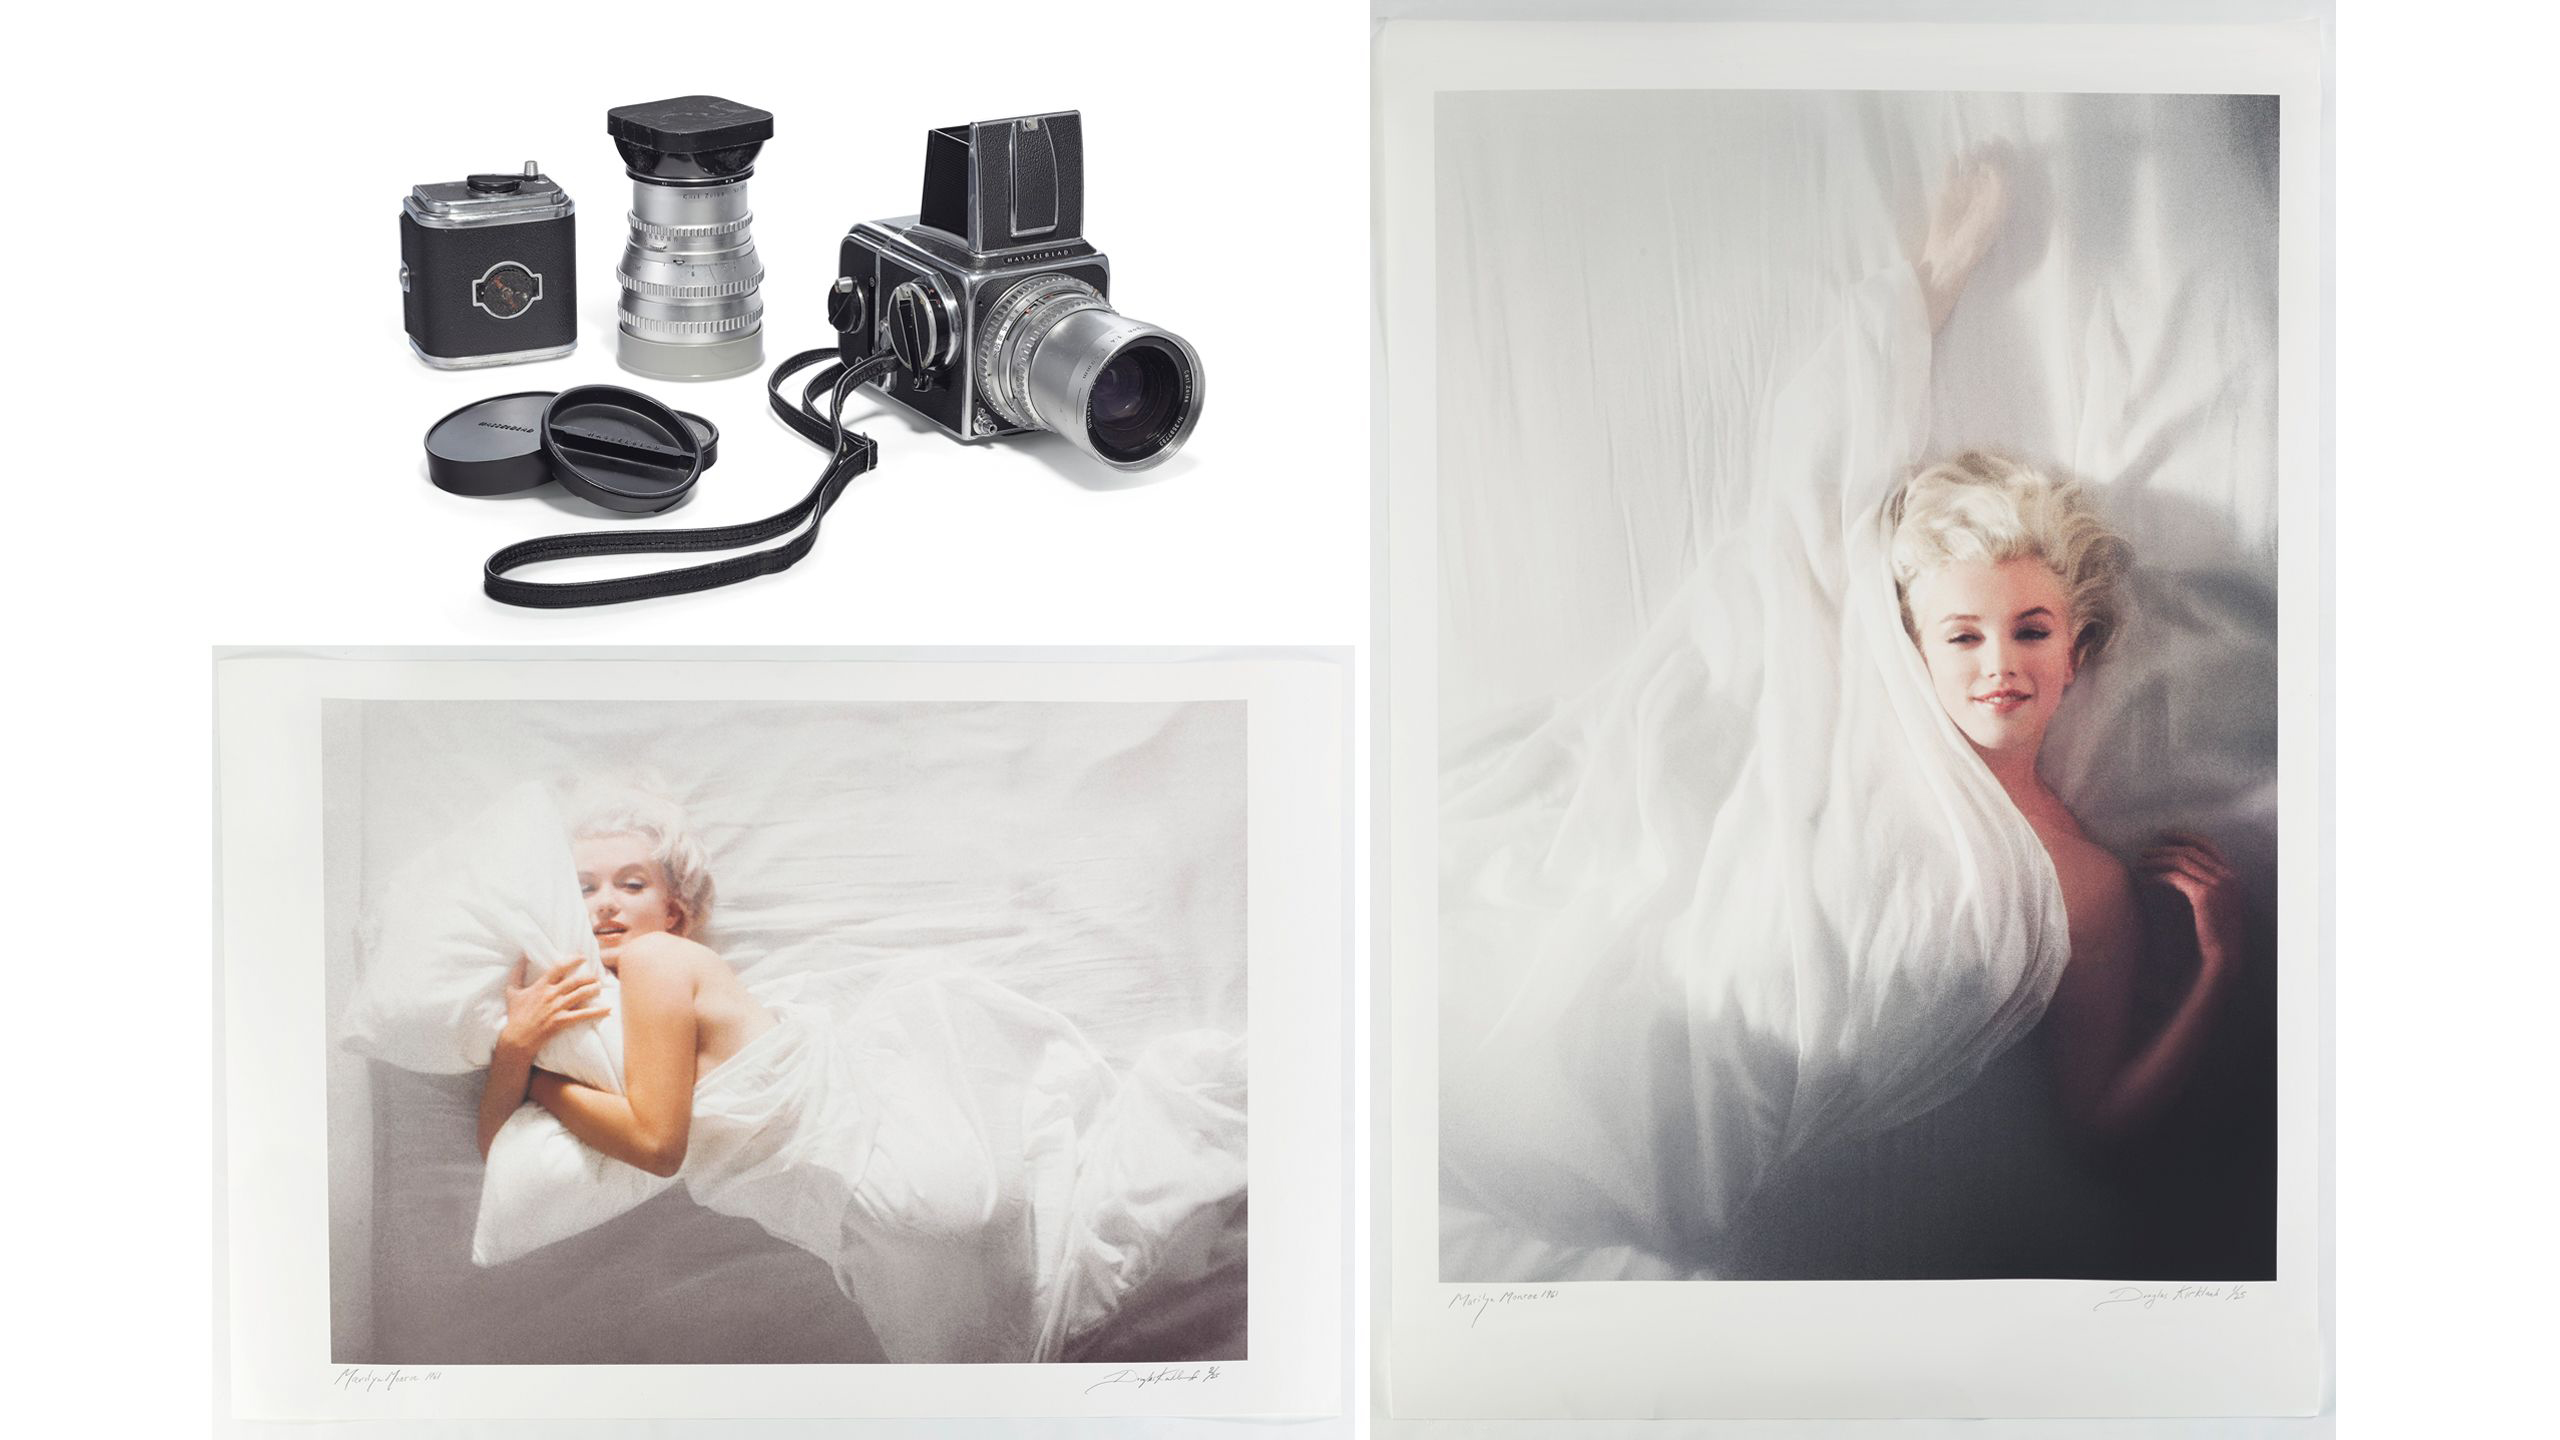 Christie's to auction off iconic photos of Marilyn Monroe taken by photographer Douglas Kirkland